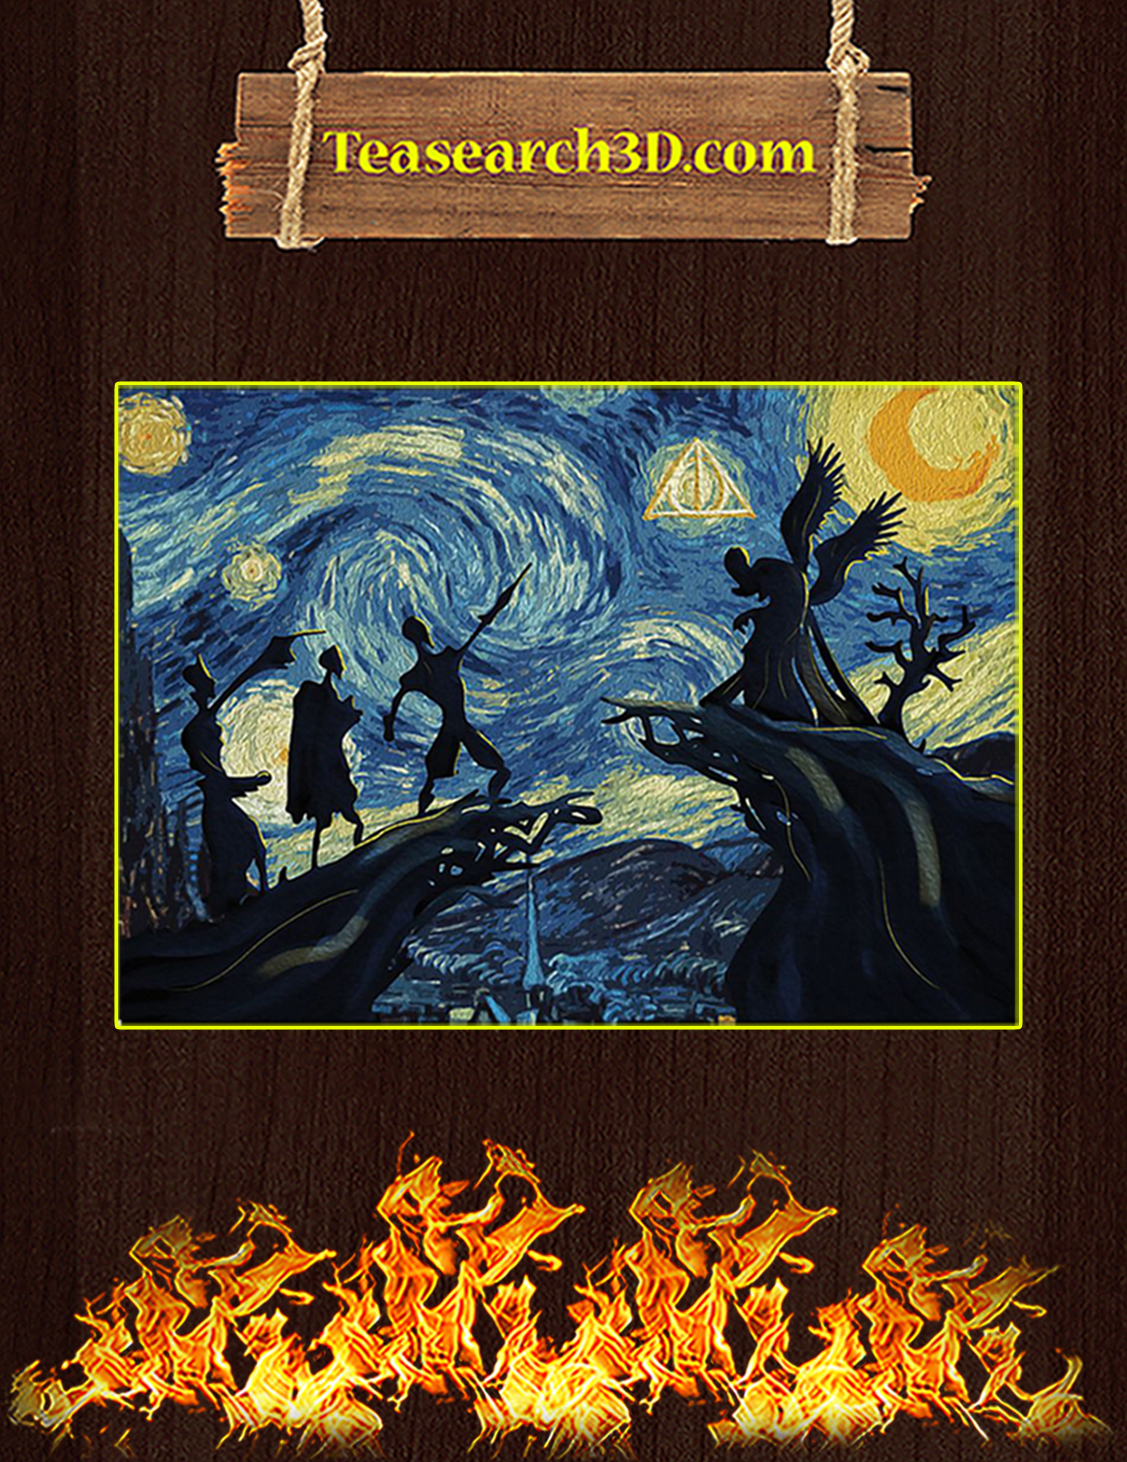 Deathly hallows starry night van gogh poster A3